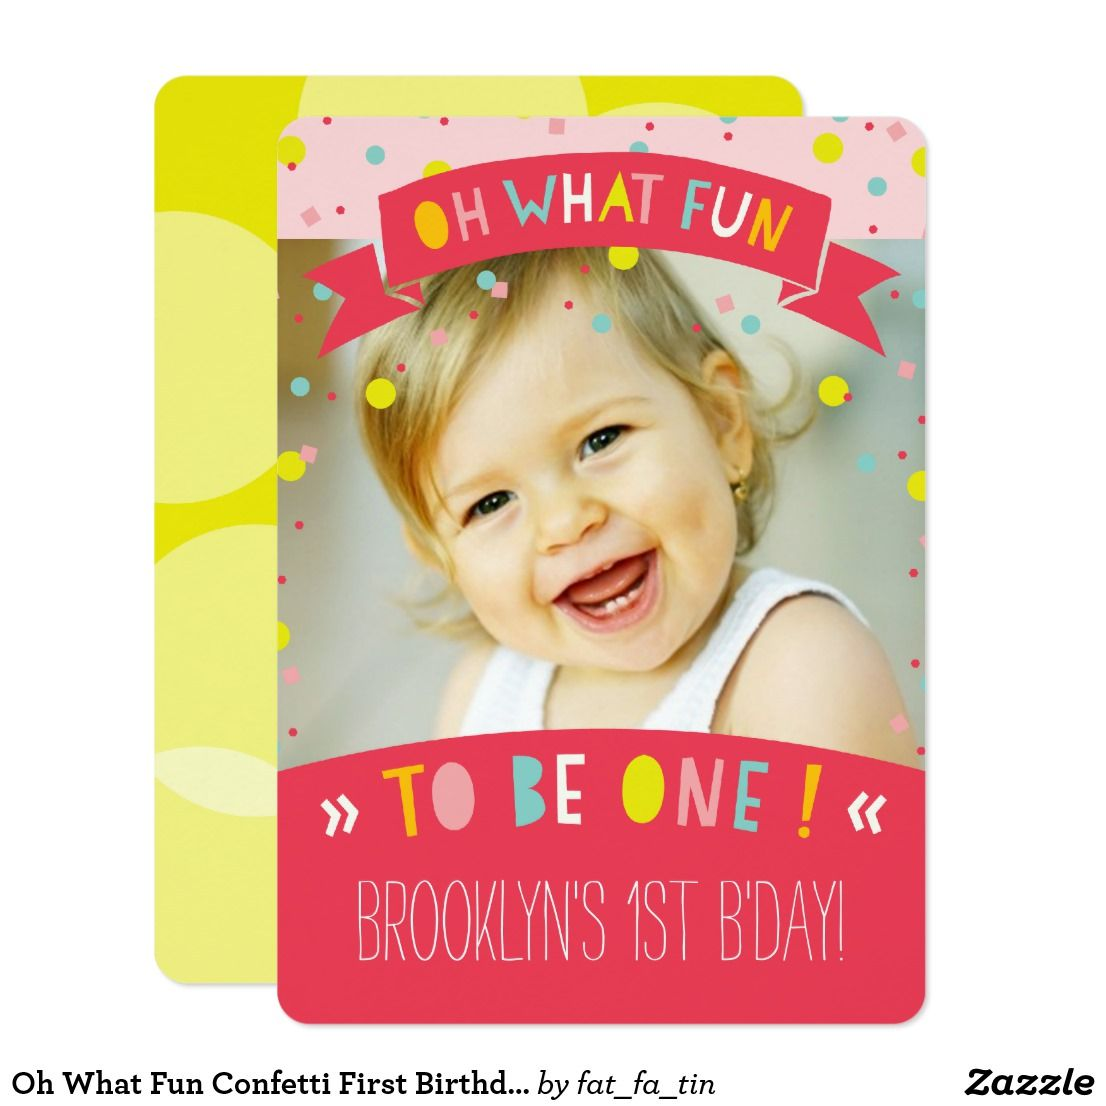 Oh What Fun Confetti First Birthday Party Invite Designed by fatfa